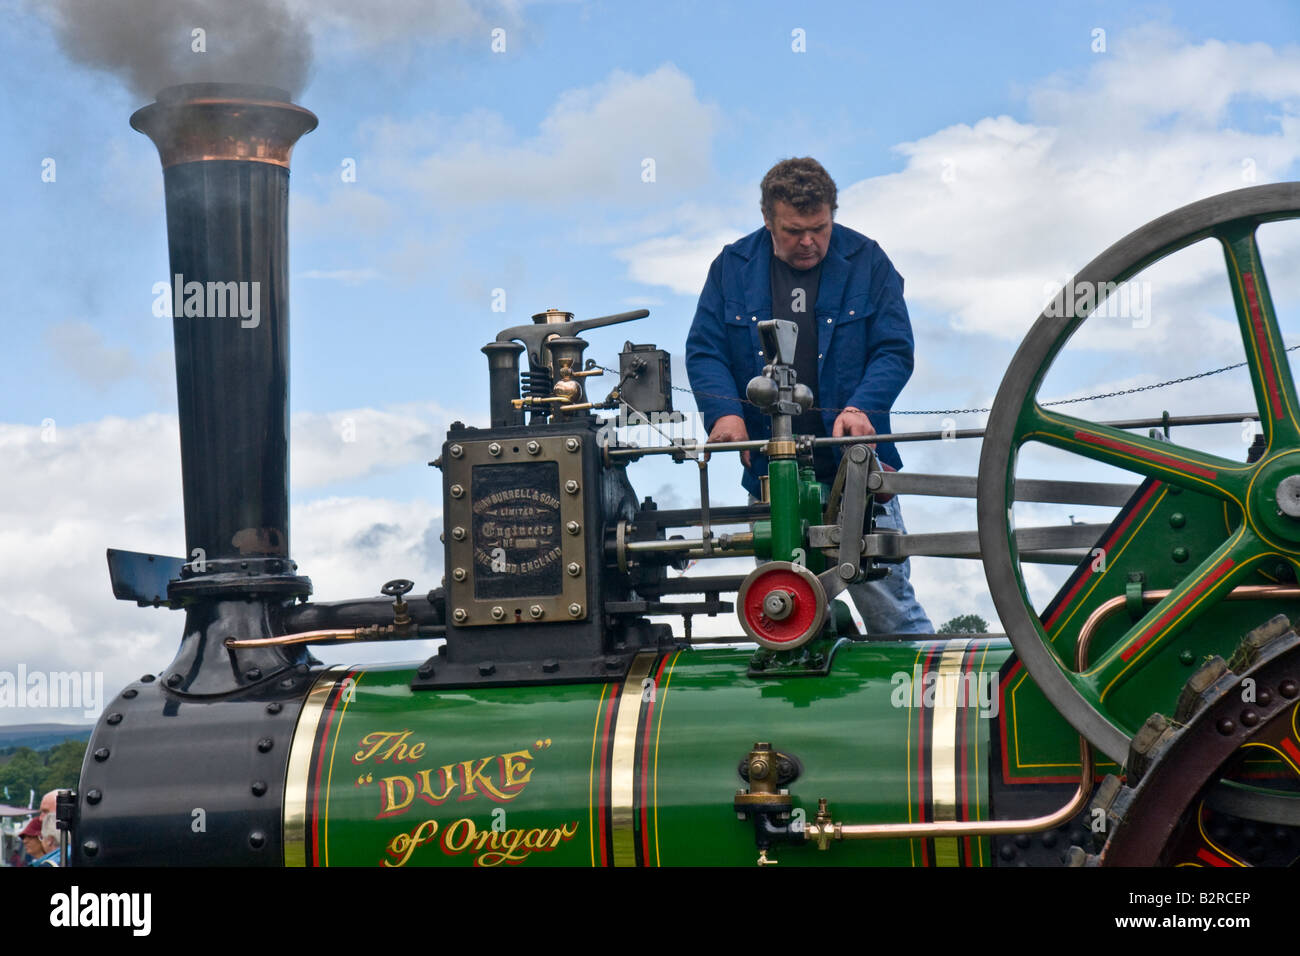 Burrell Traction Engine at the Masham Steam Engine and Fair Organ Rally, North Yorkshire - Stock Image